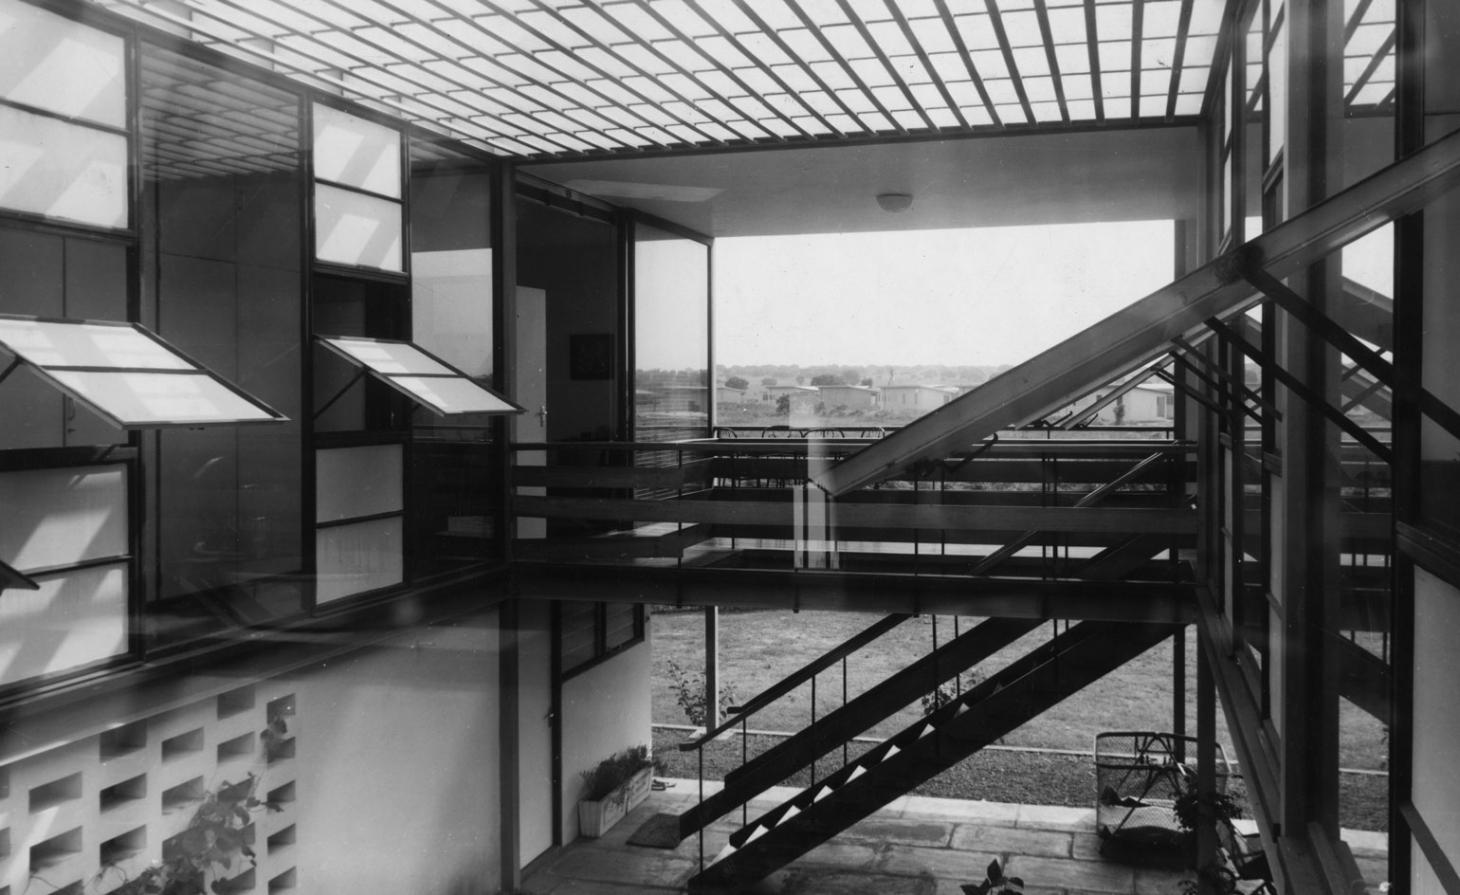 black and white building with stairs from civic architecture n Ghana